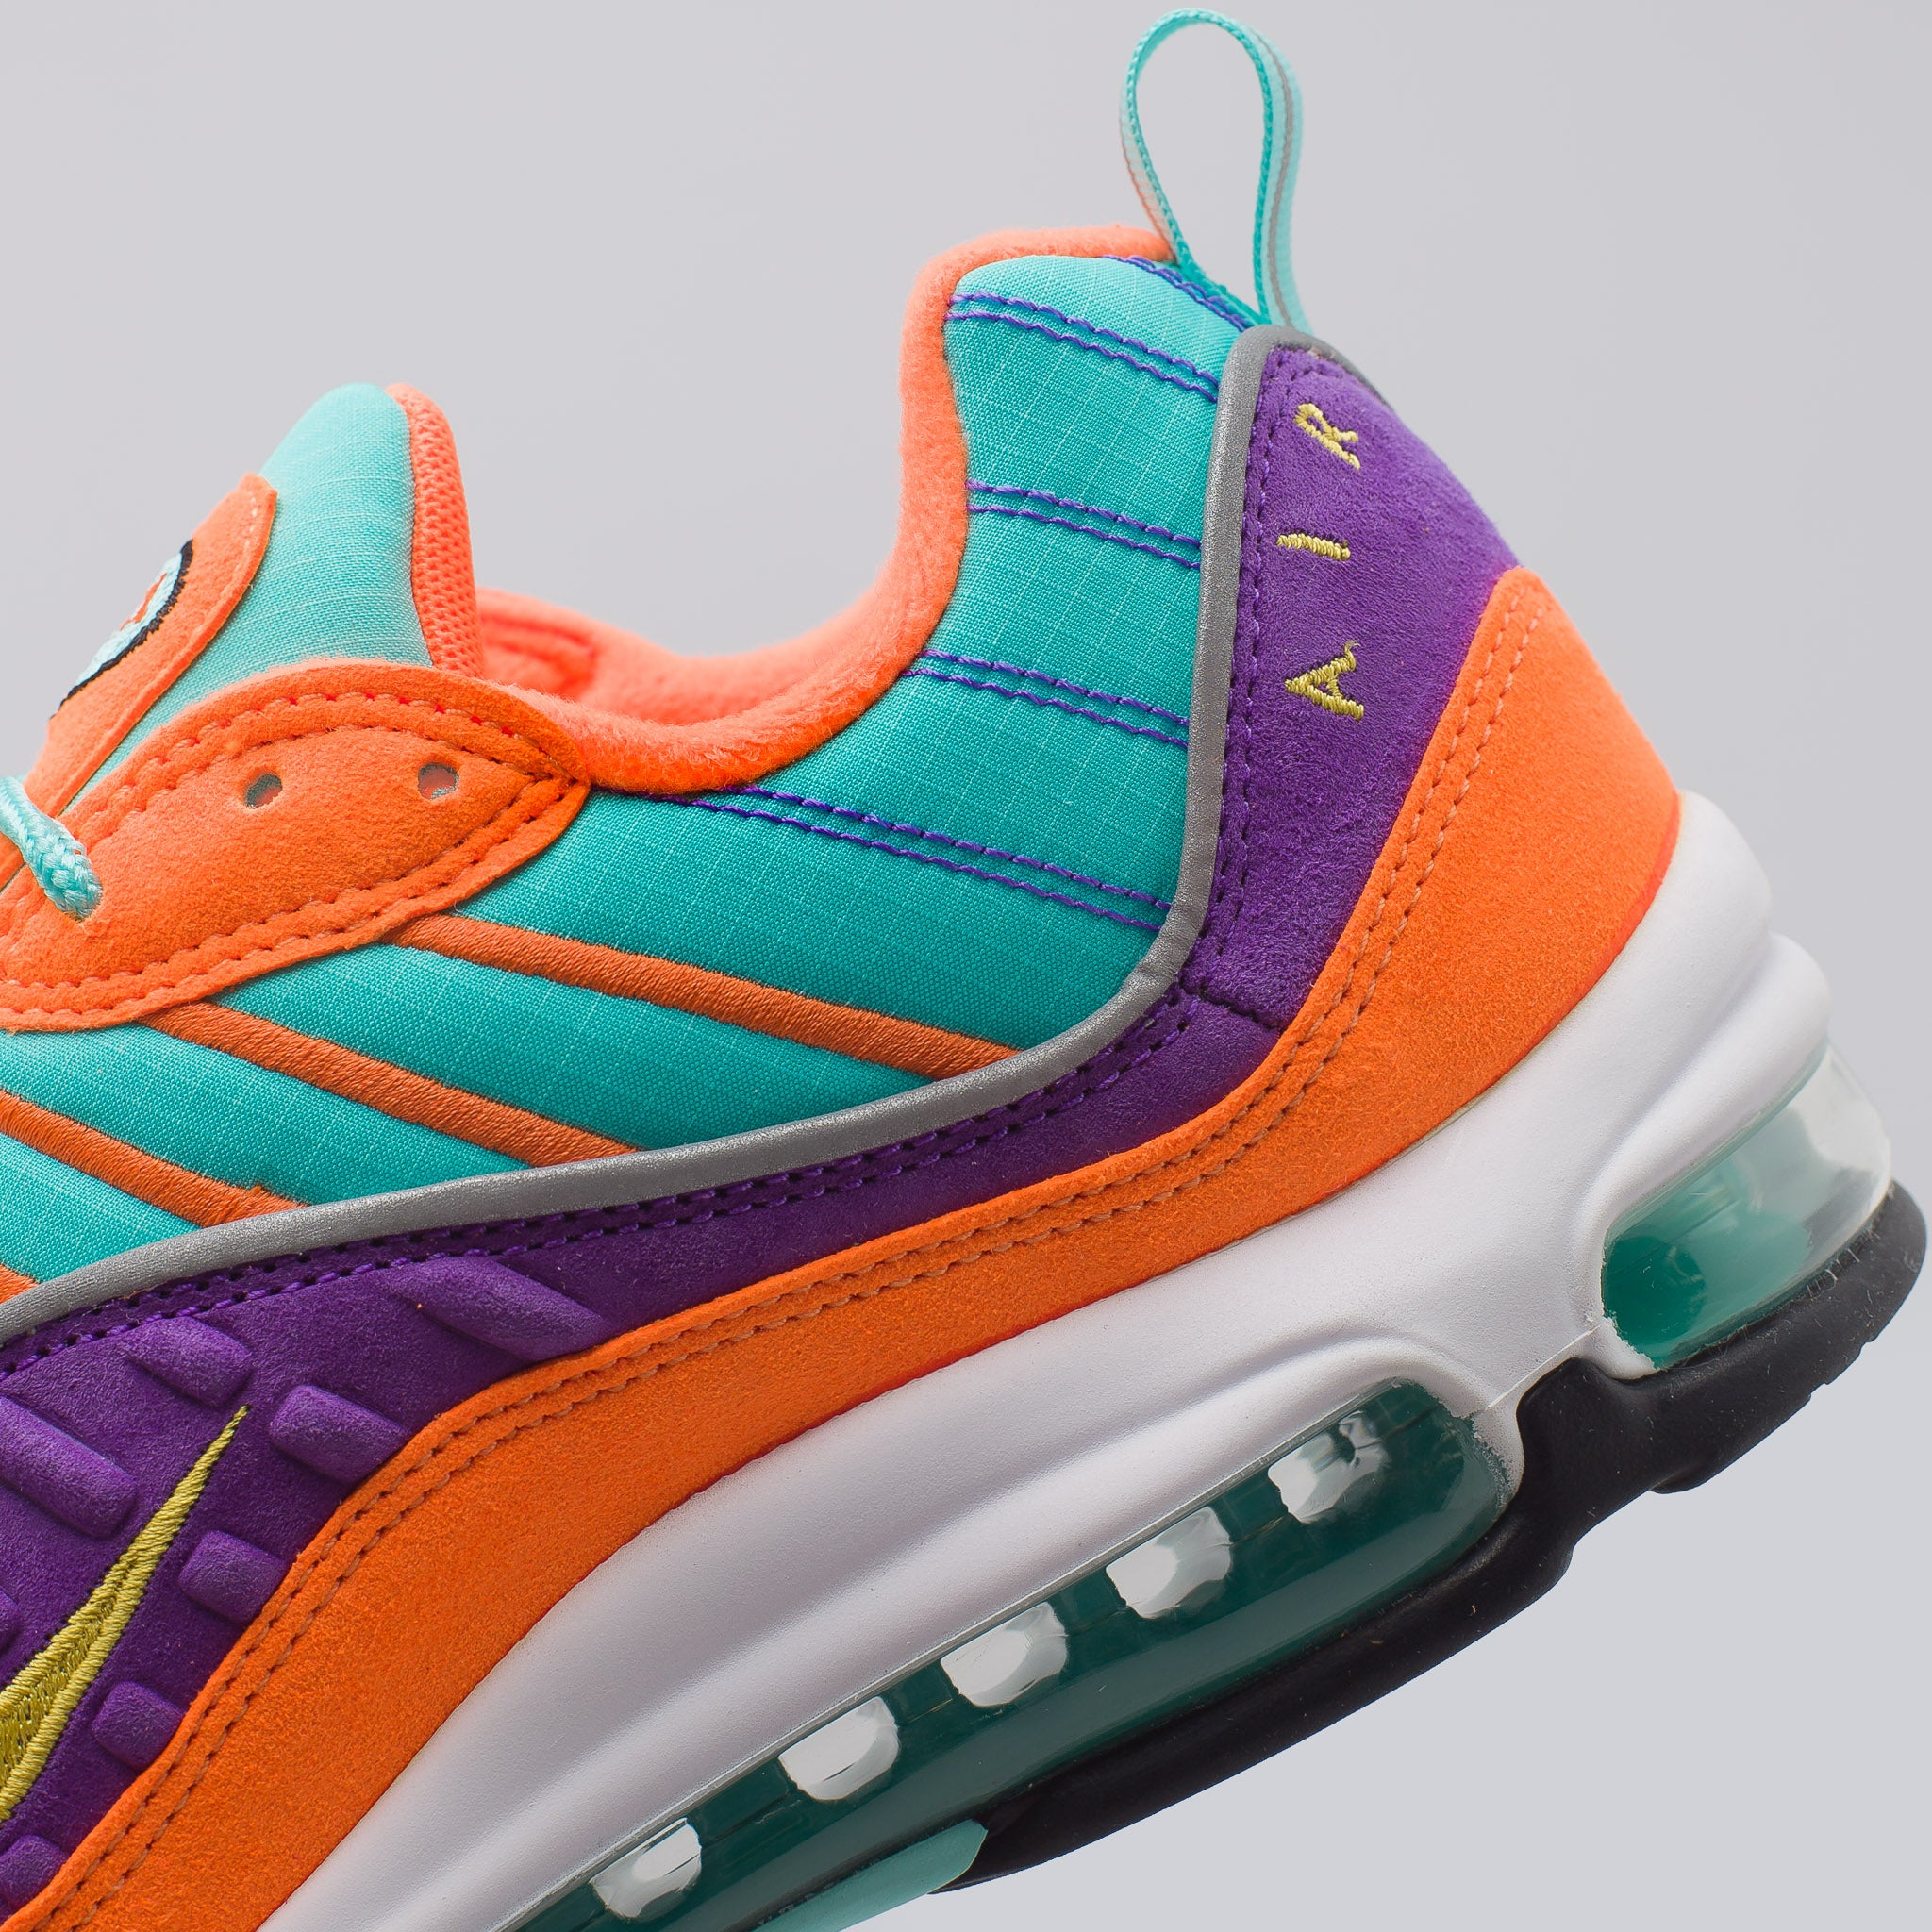 Air Max 98 QS in Cone/Tour Yellow/Grape